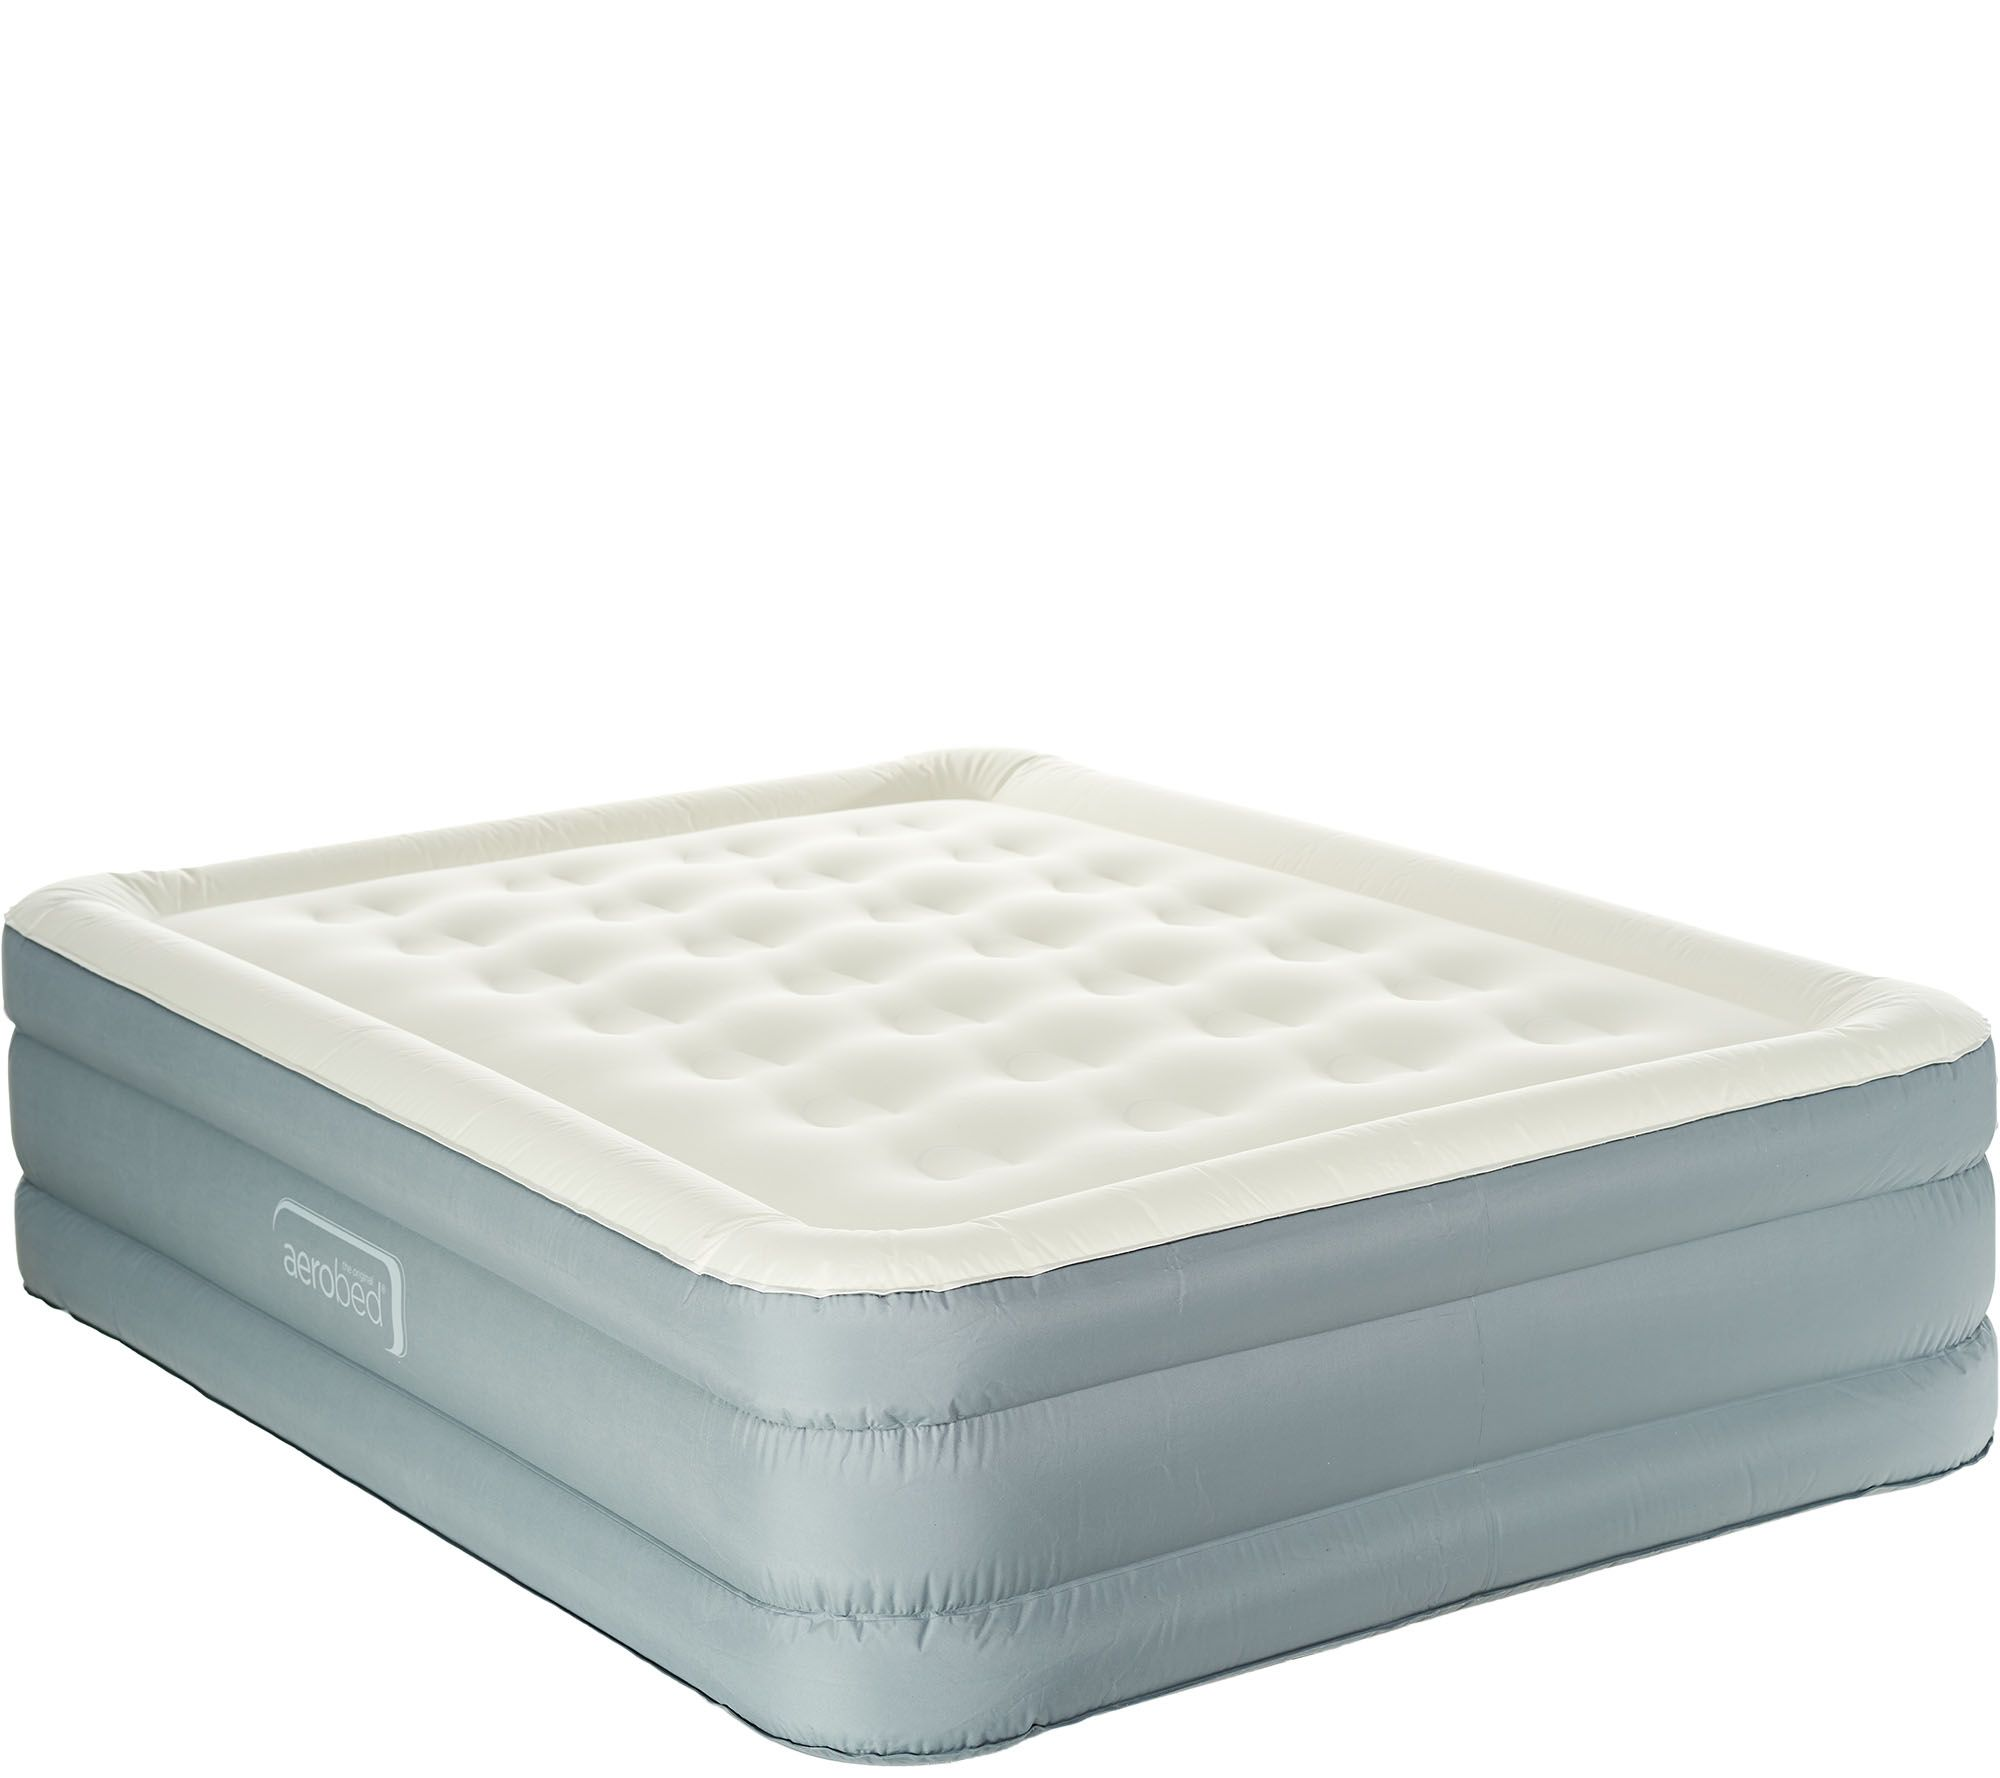 "Aerobed 18"" Adjustable fort Antimicrobial Air Mattress"